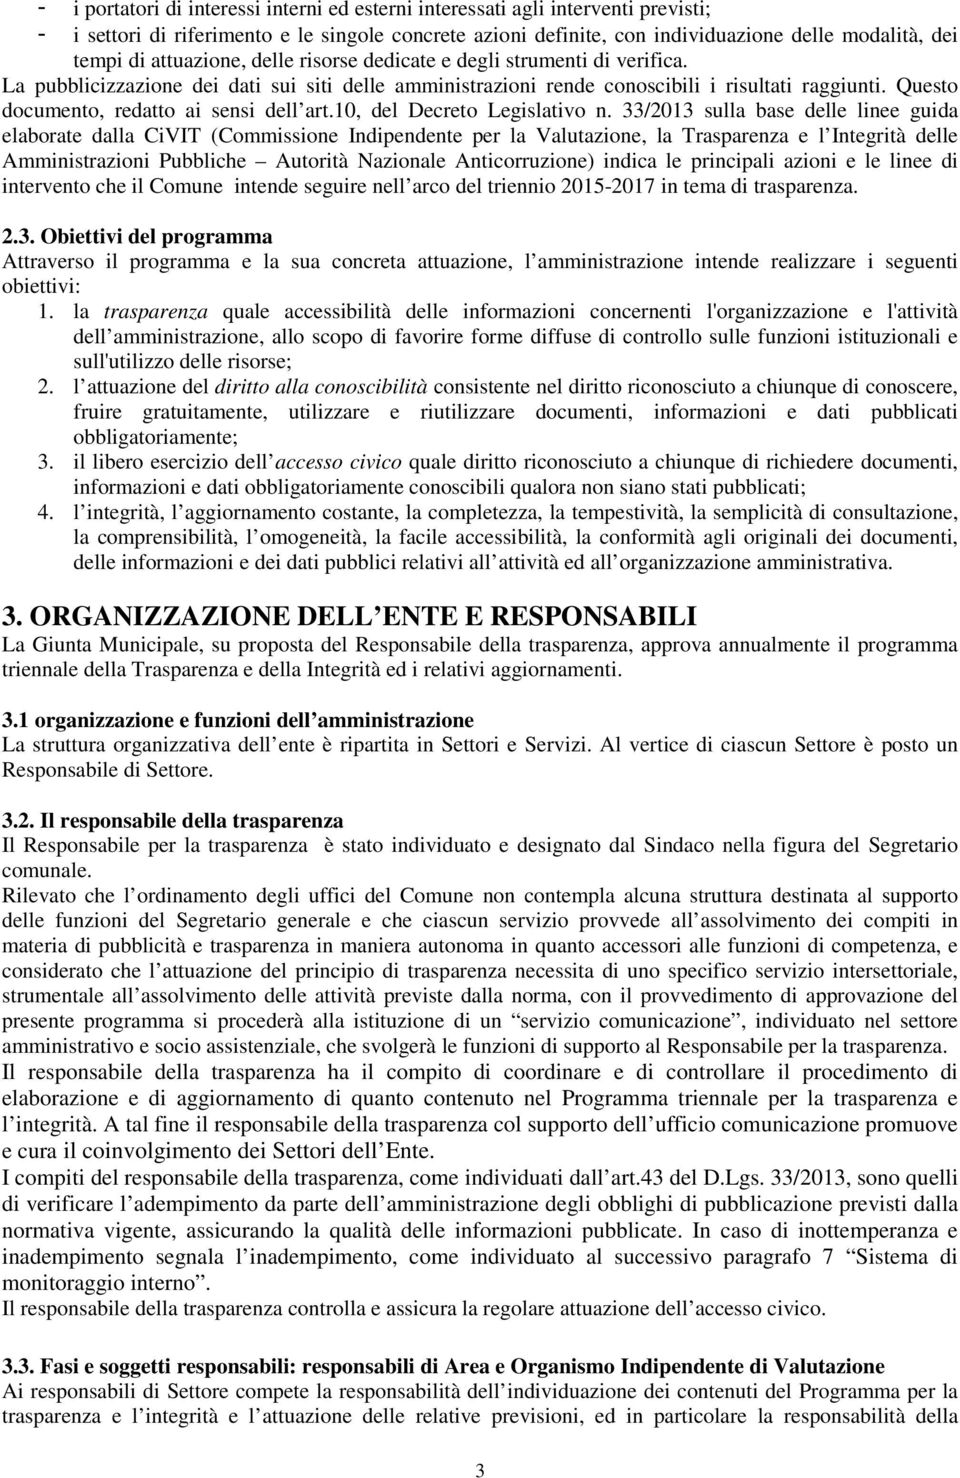 Questo documento, redatto ai sensi dell art.10, del Decreto Legislativo n.